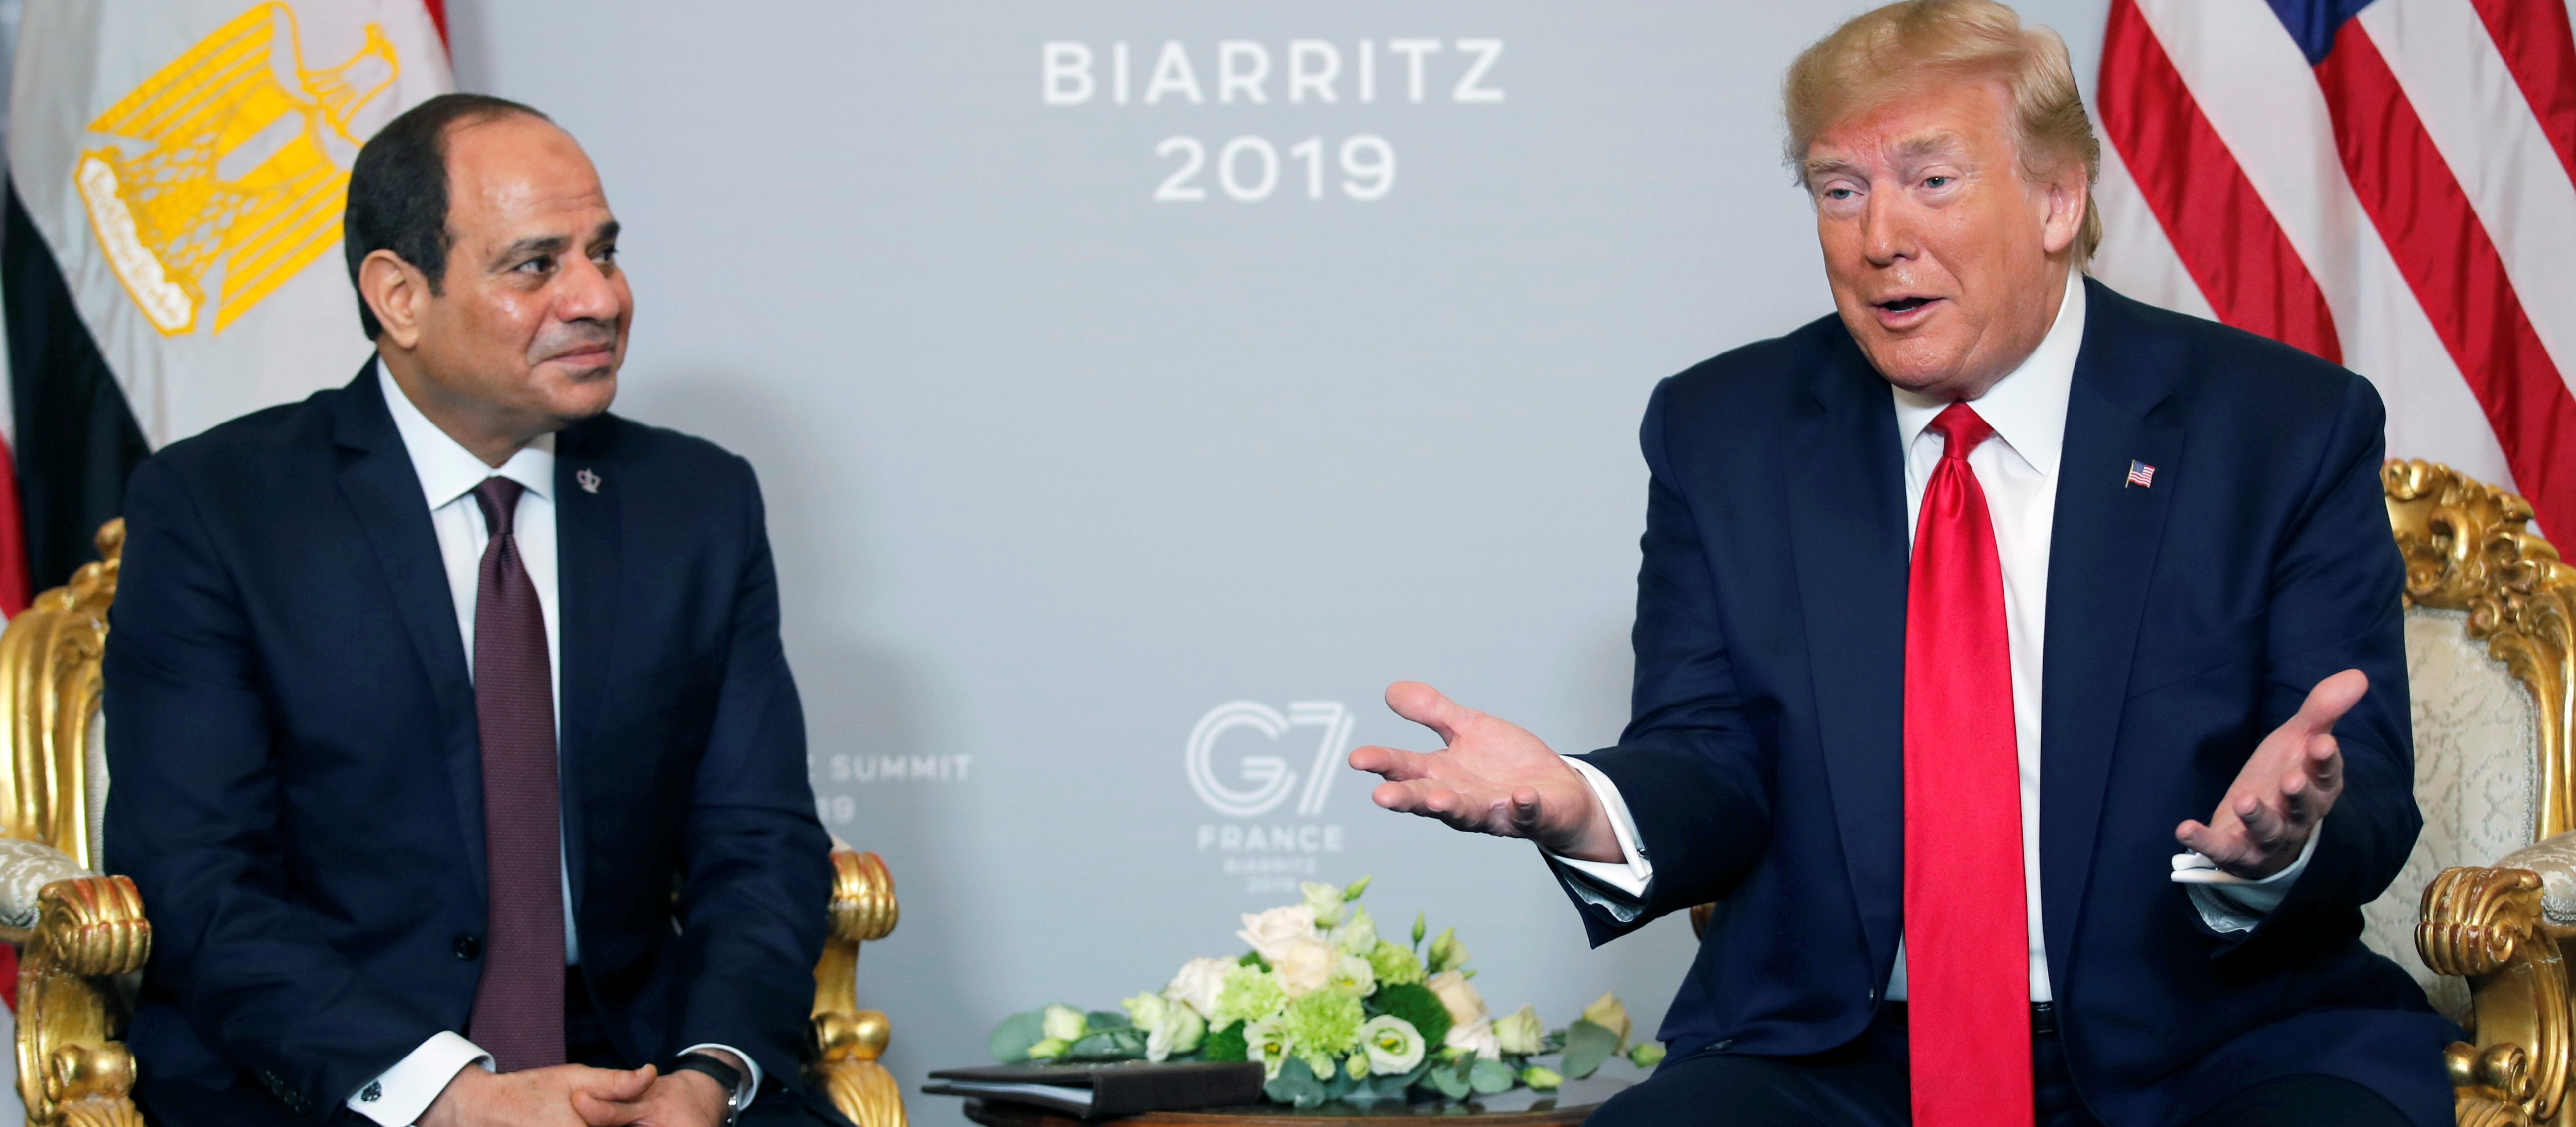 Report: Trump Called Out, 'Where's My Favorite Dictator' When Looking For Egypt's El-Sisi